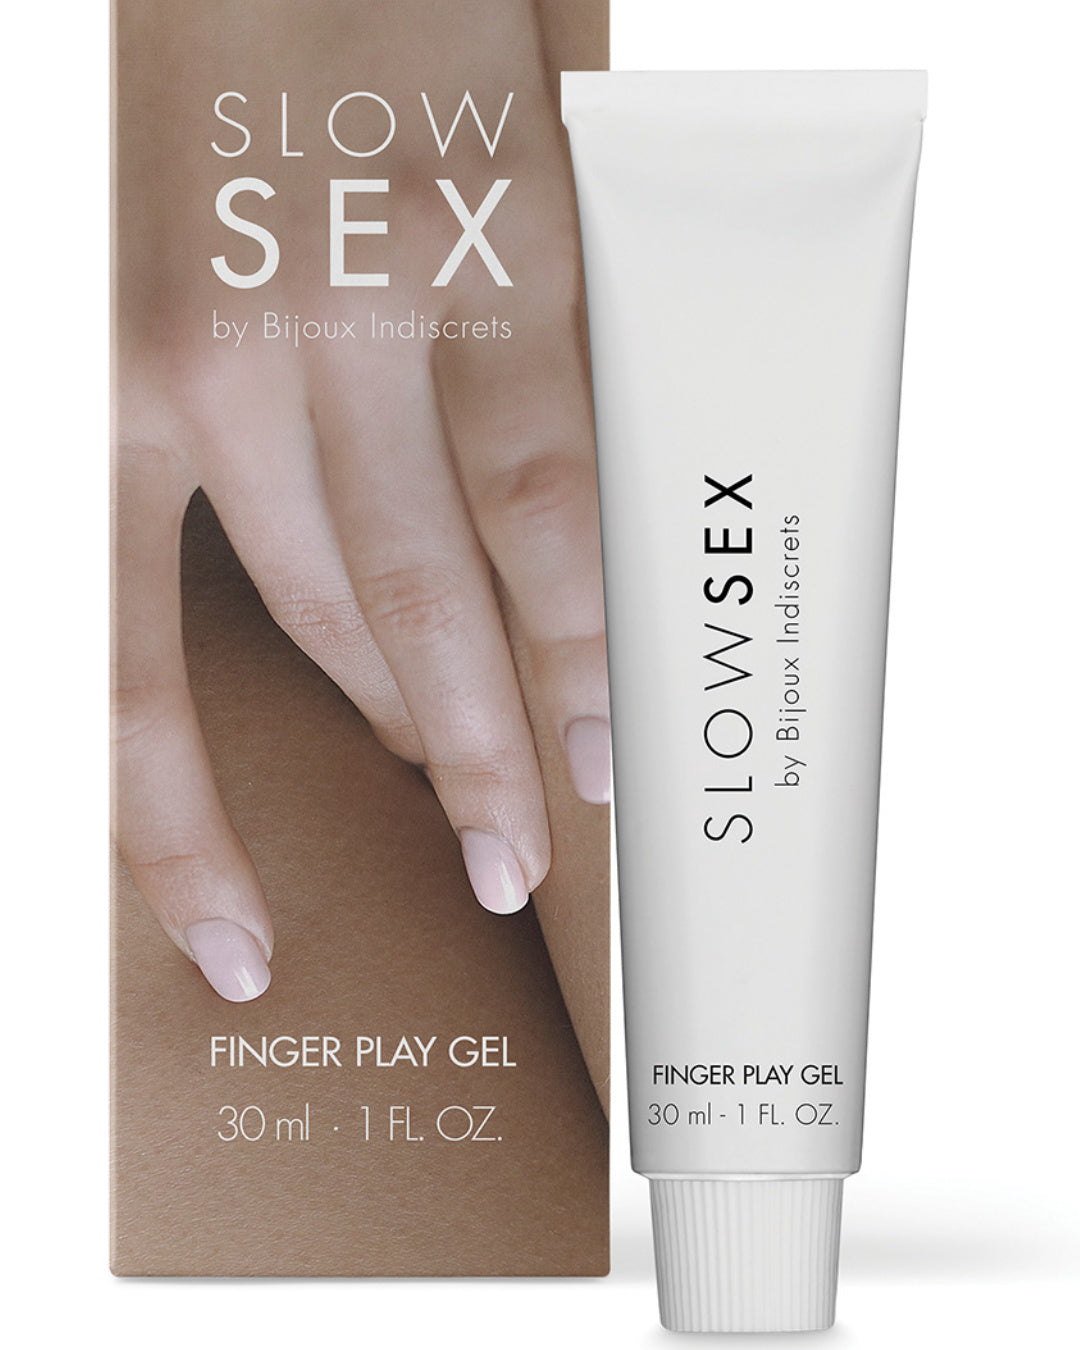 Bijoux Indiscrets Slow Sex Finger Play Gel 1 oz with box